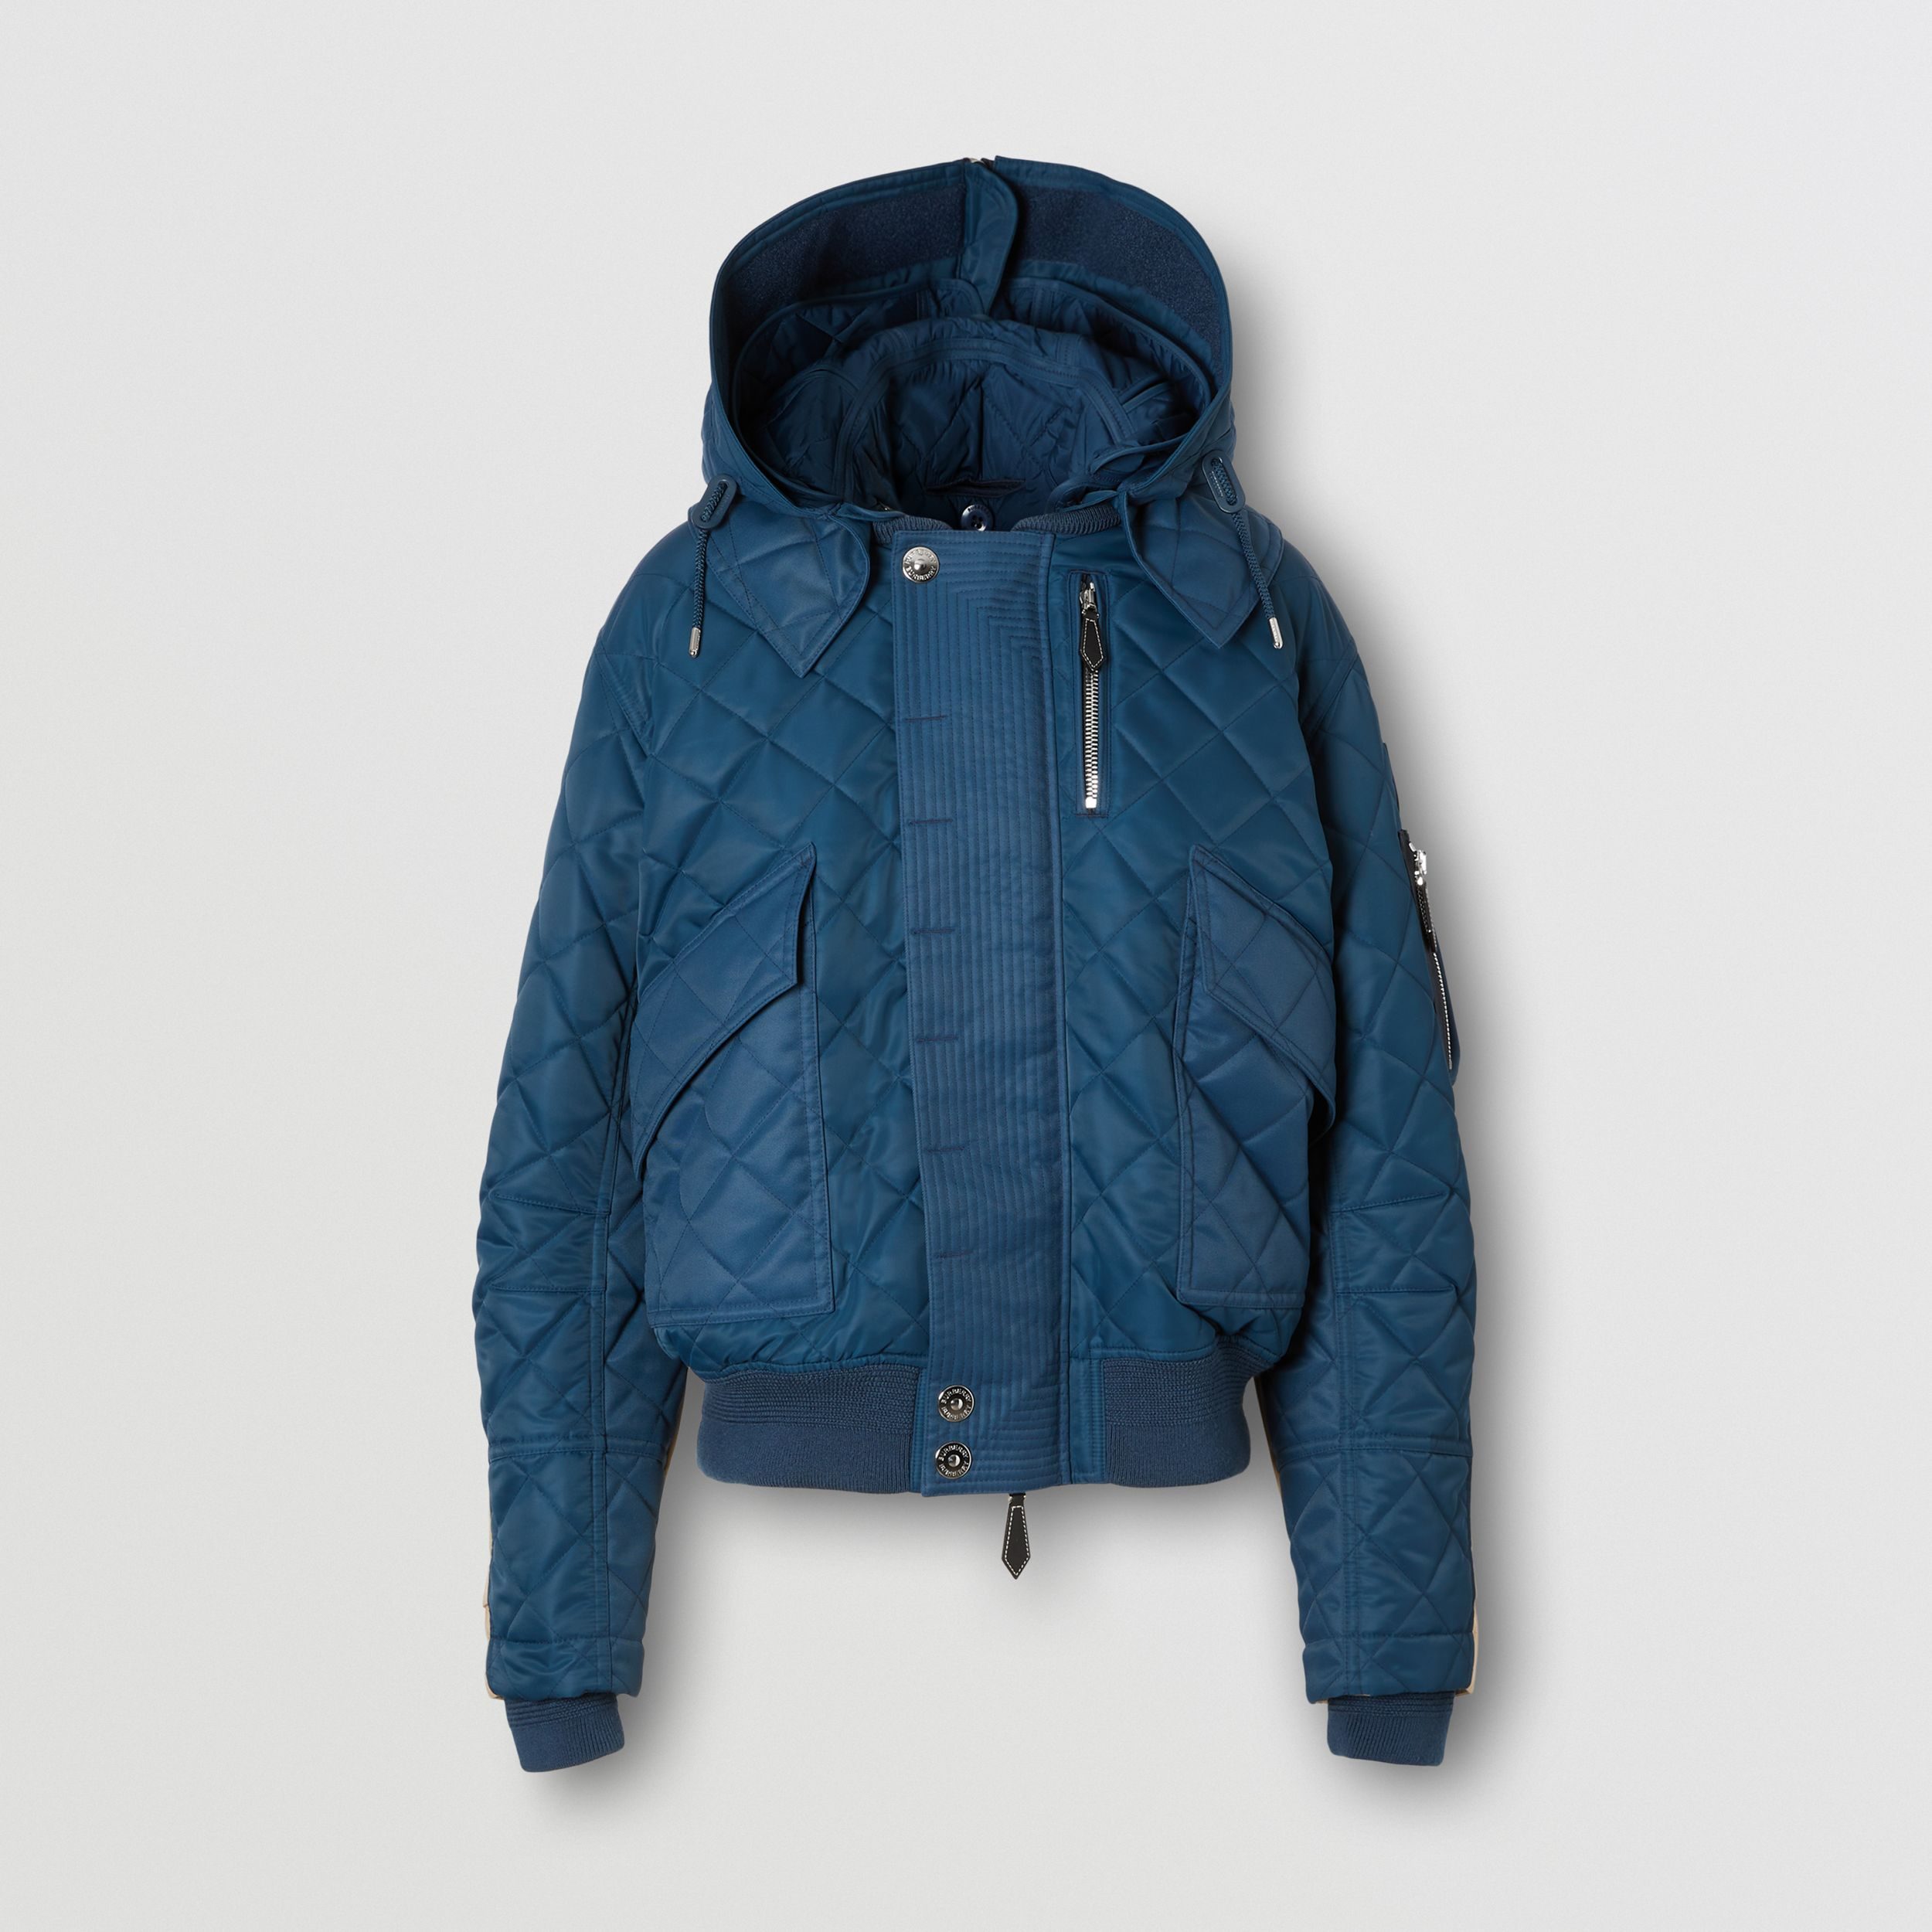 Detachable Hood Quilted Nylon and Cotton Jacket in Dark Carbon Blue | Burberry - 4